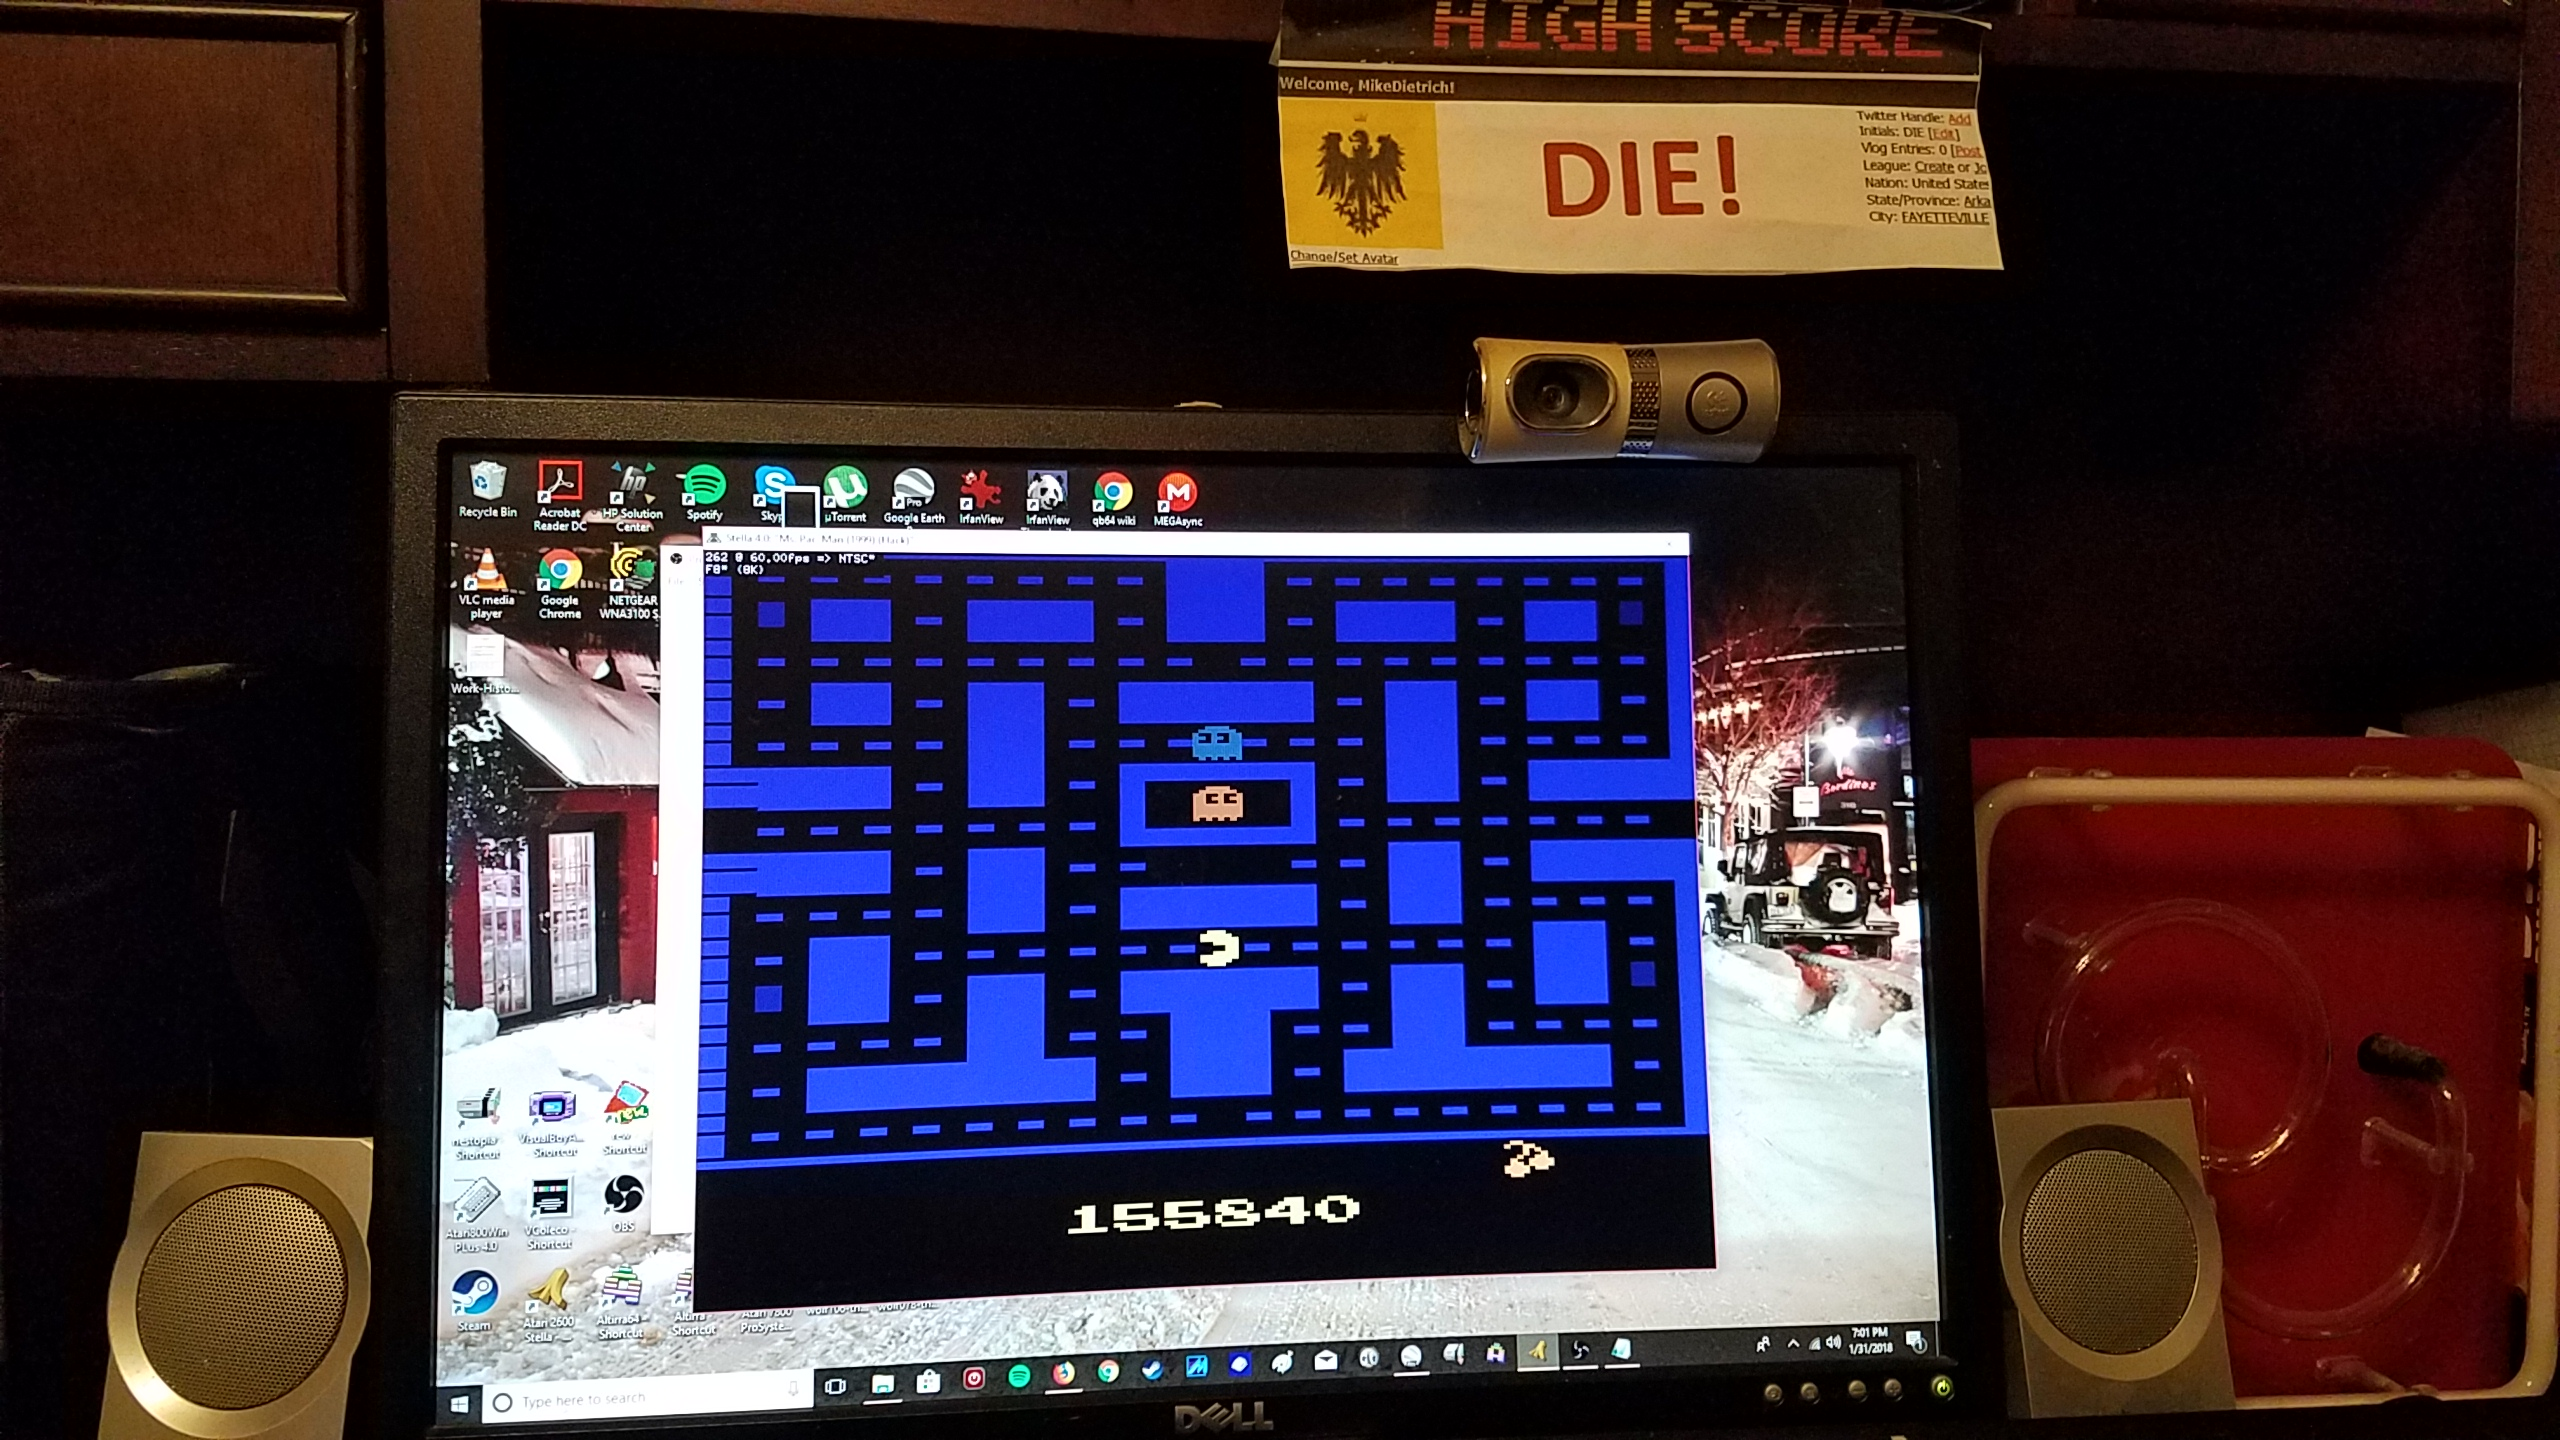 MikeDietrich: Pac-Man Arcade (Atari 2600 Emulated Novice/B Mode) 155,840 points on 2018-01-31 19:03:22